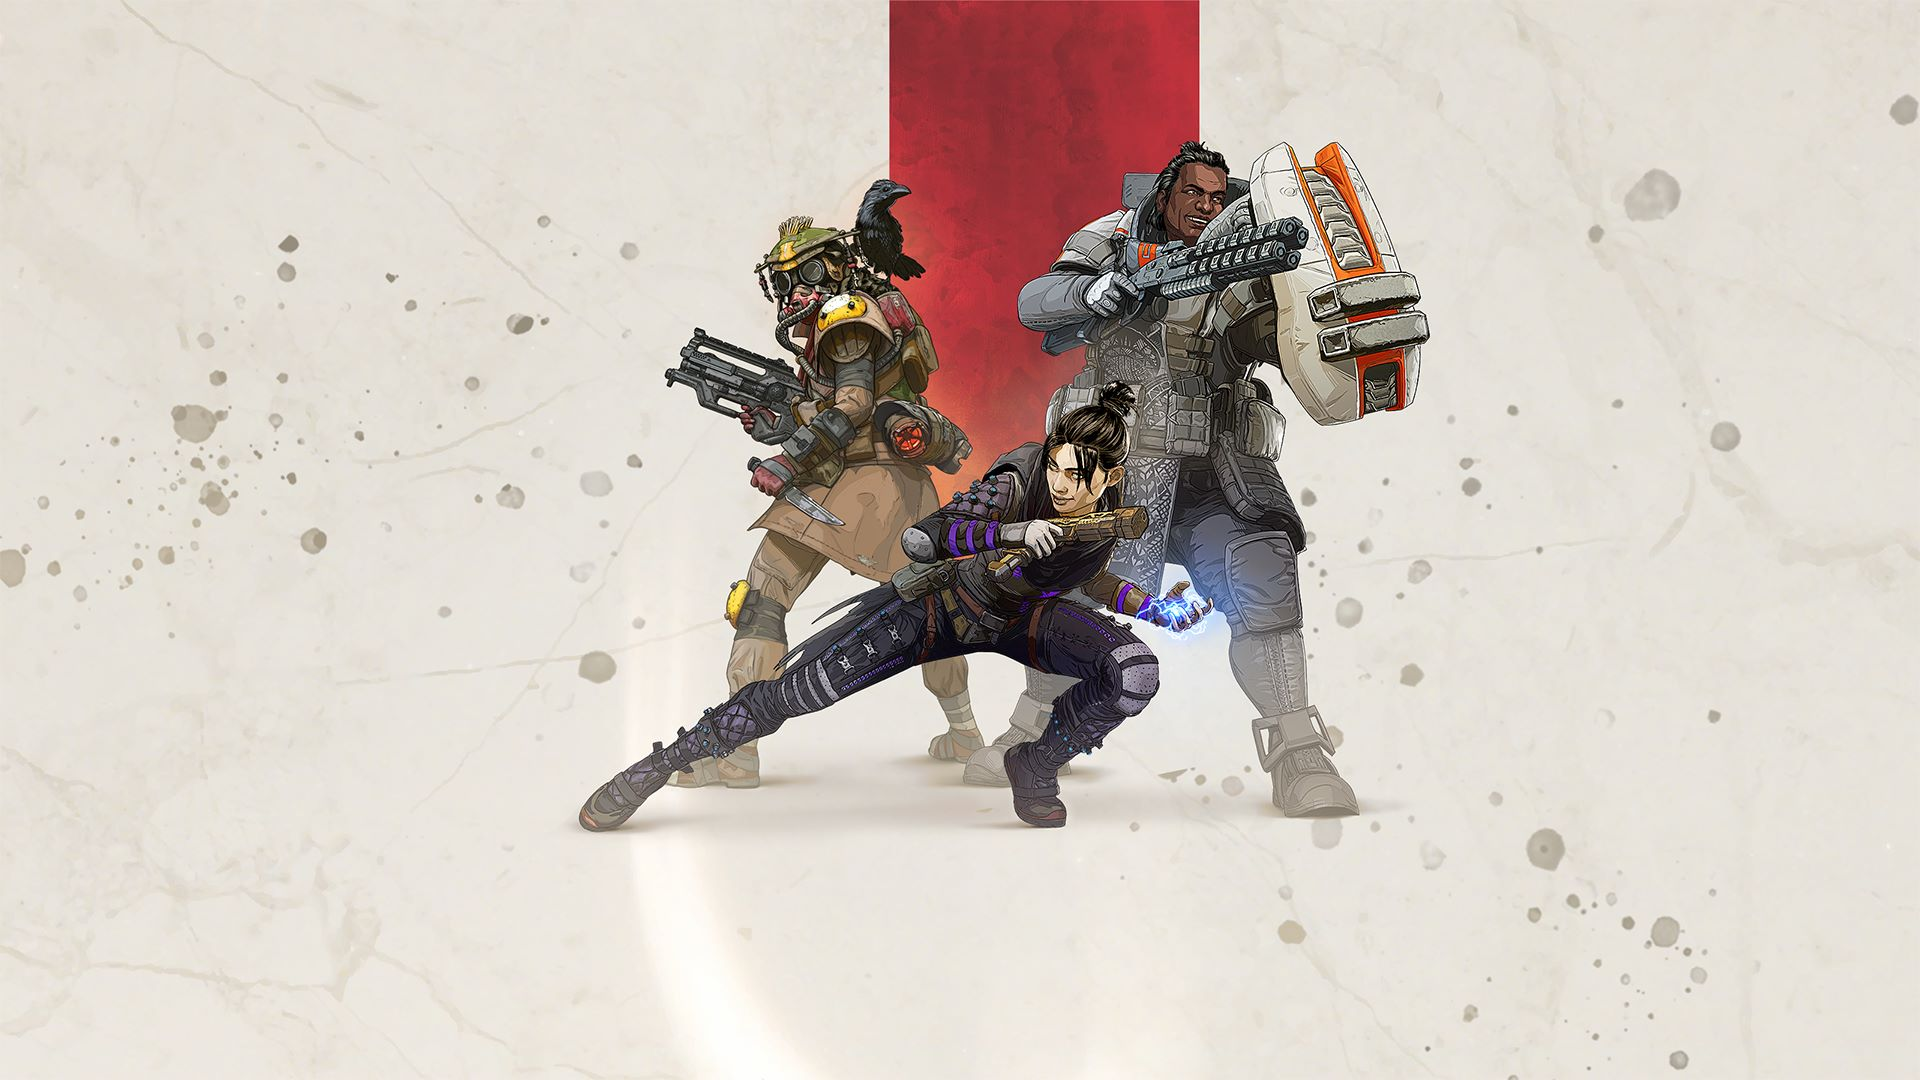 Wallpaper of Apex Legends Video Game Art Poster background HD 1920x1080